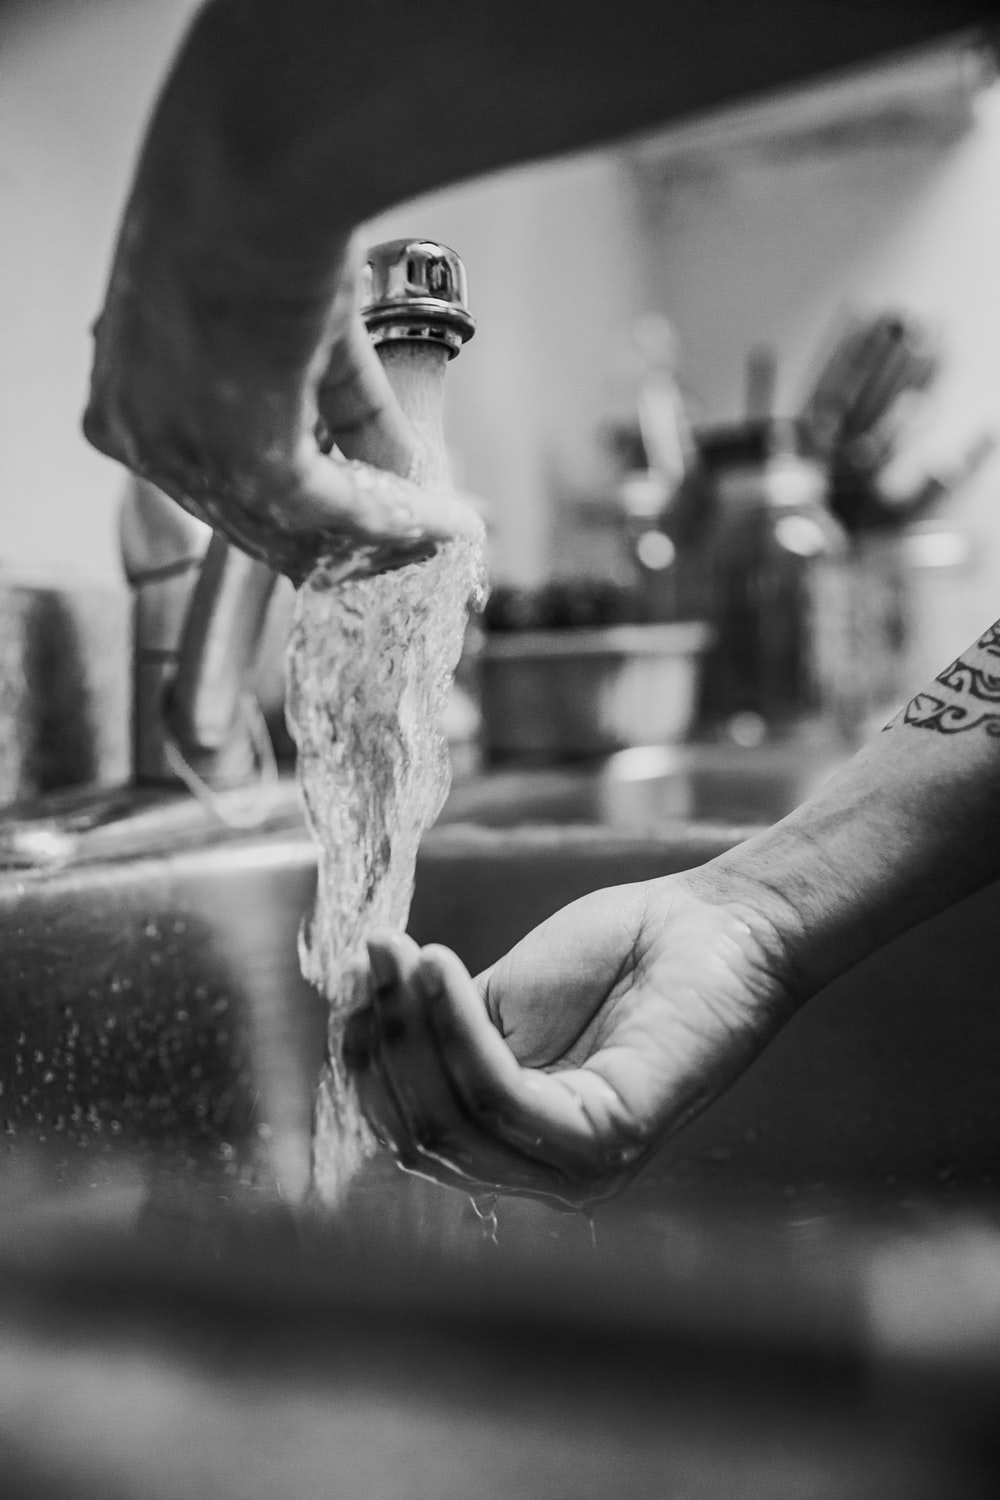 grayscale photo of person pouring water on persons hand